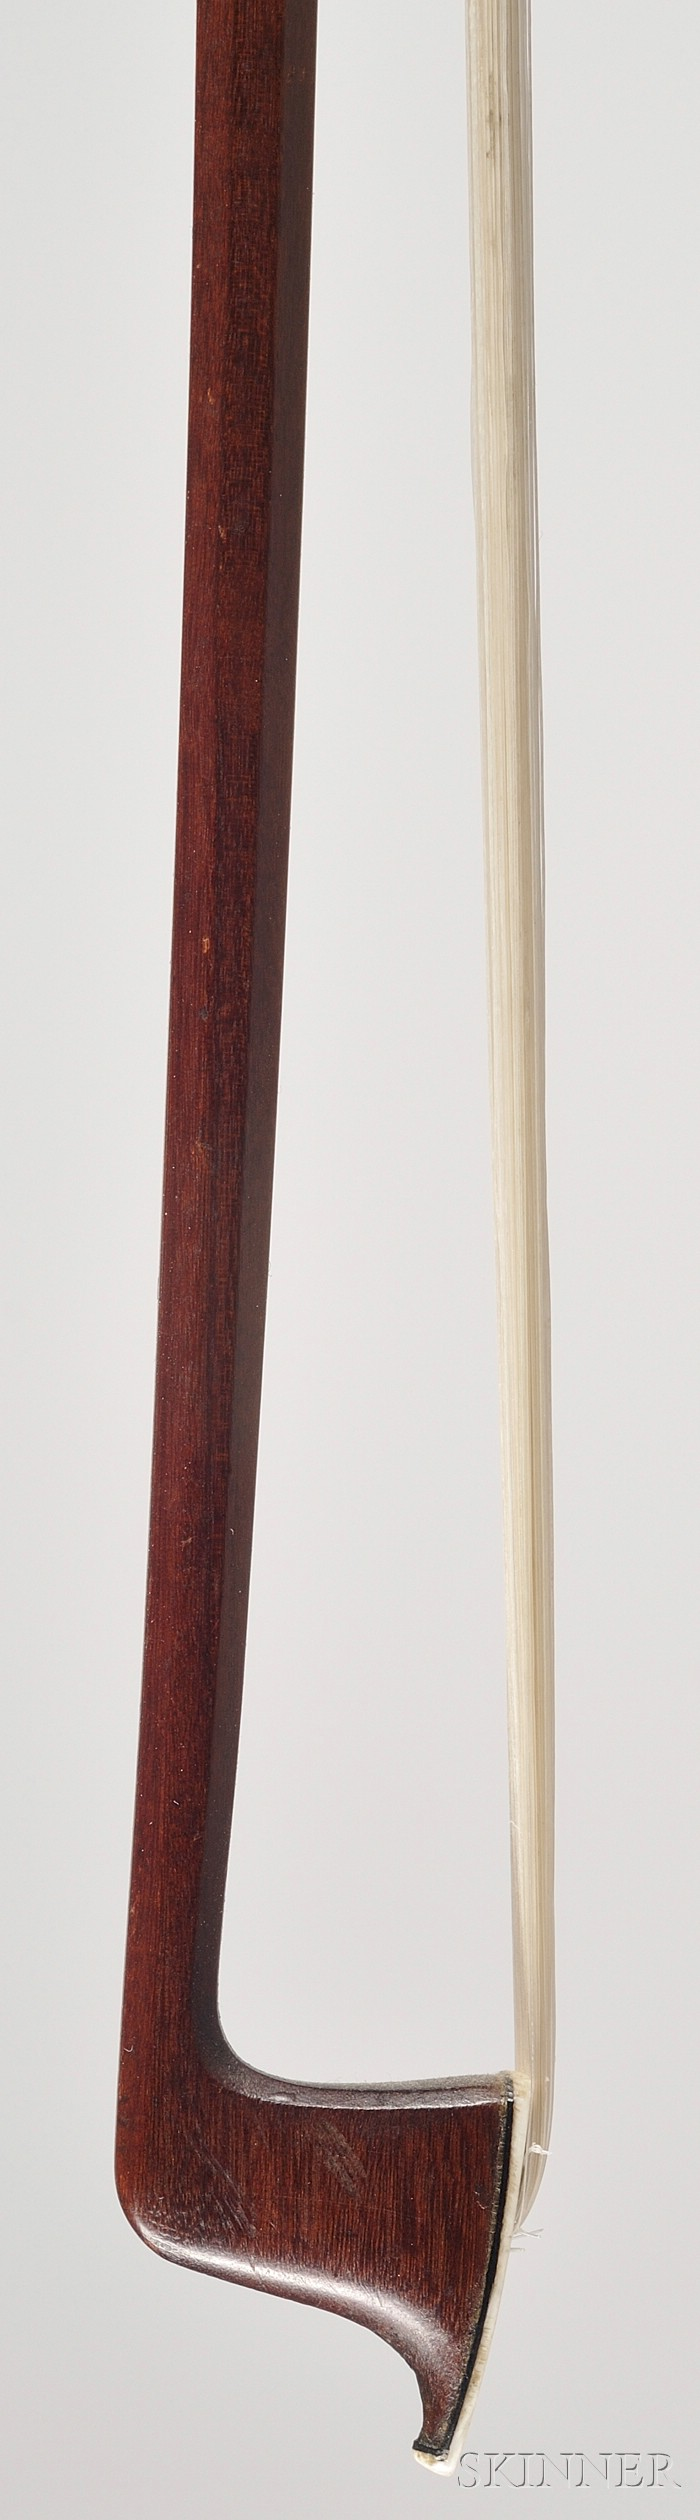 French Nickel Mounted Violin Bow, Eugene Sartory